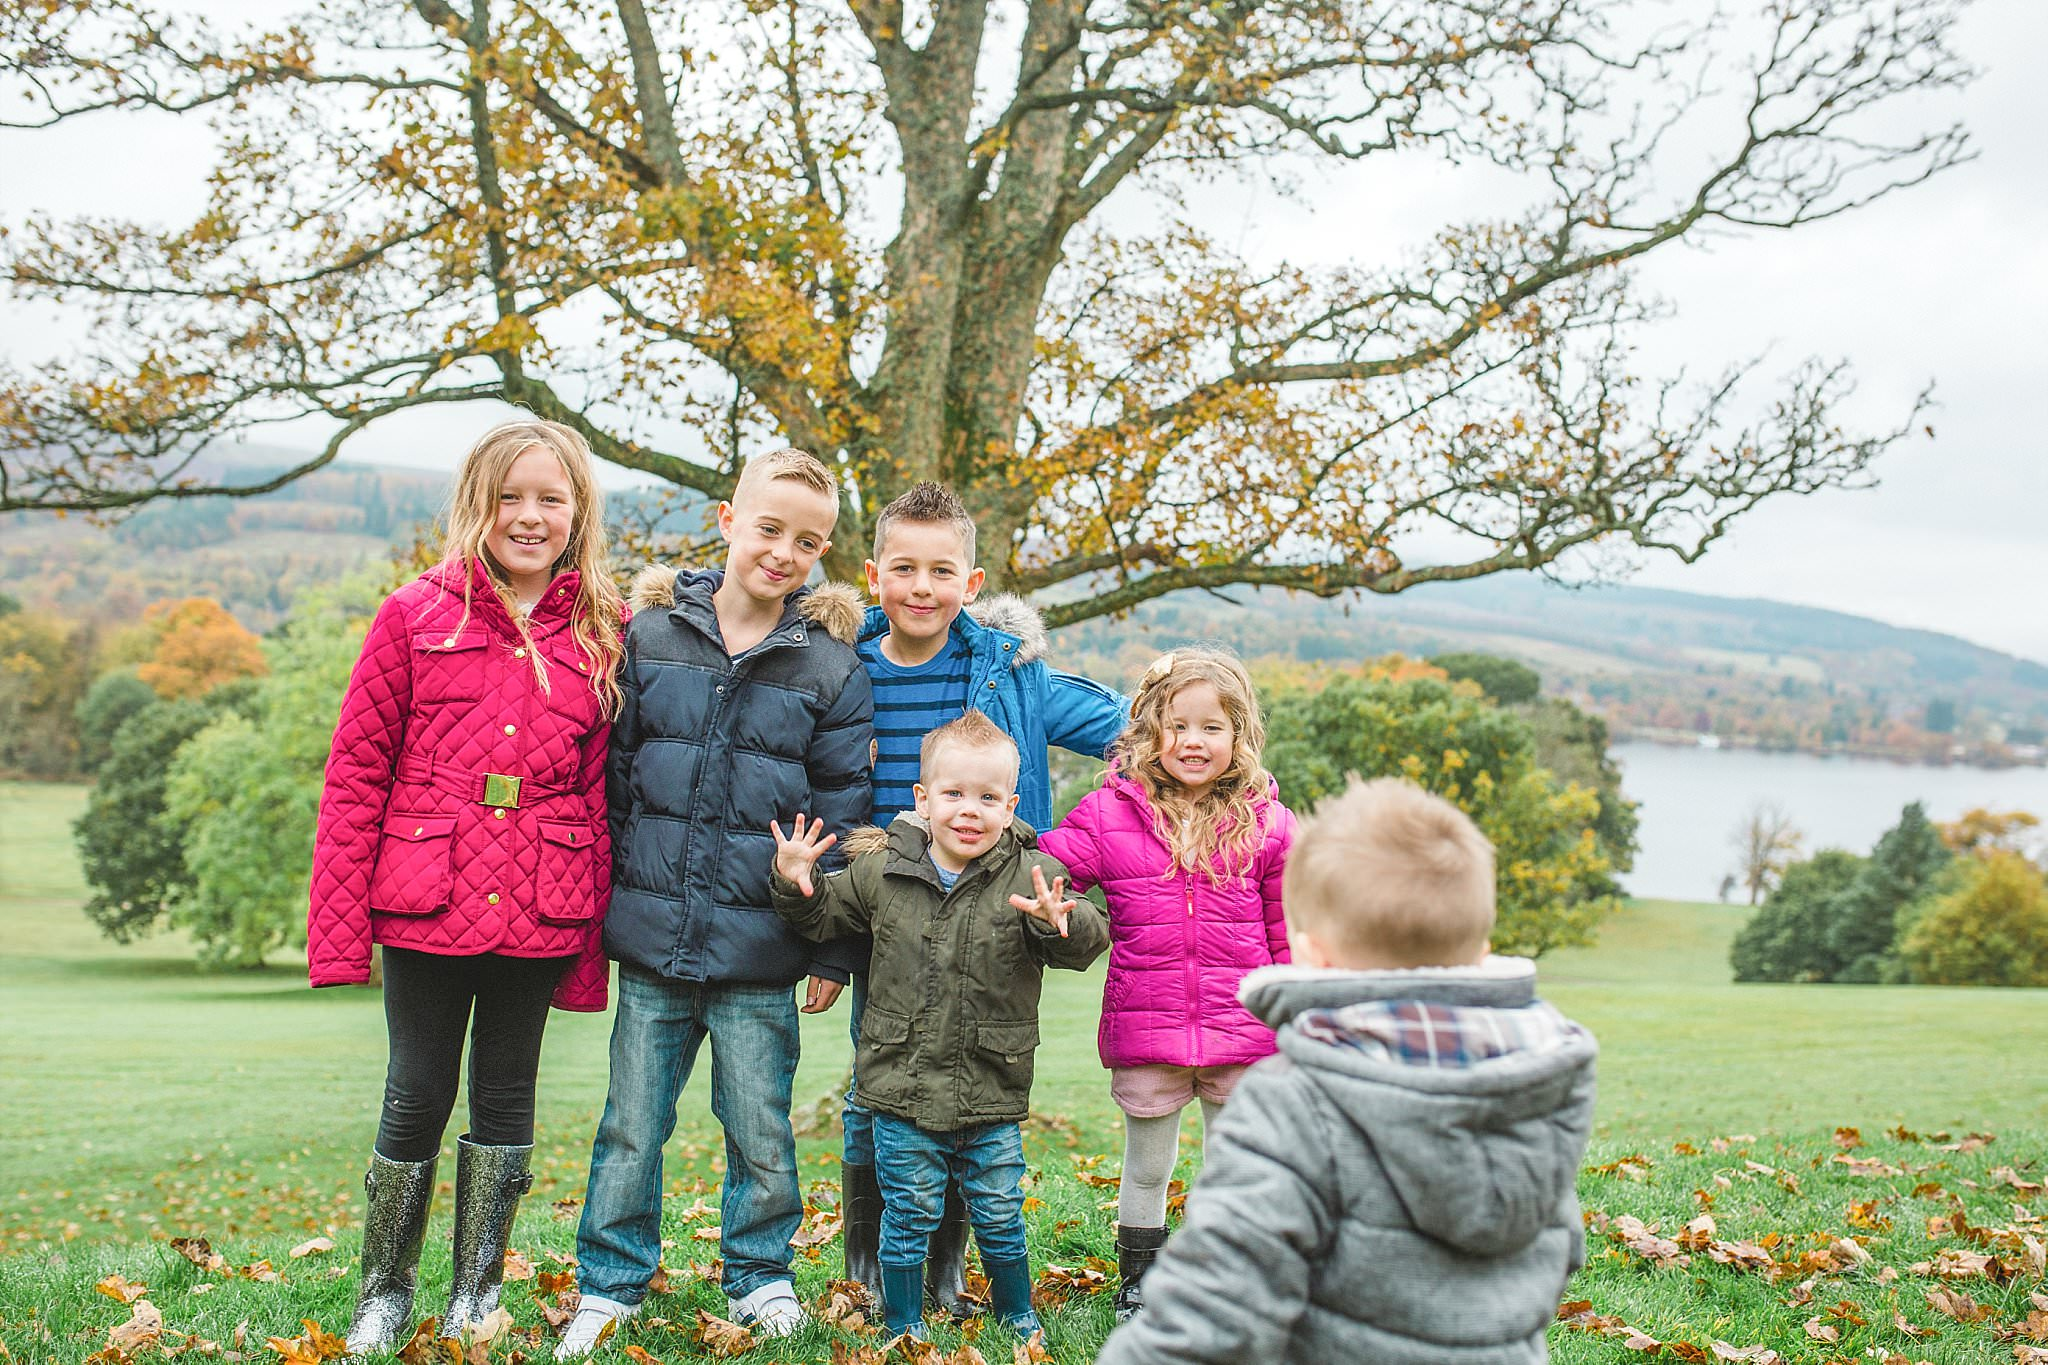 Family photographers Glasgow,The Gibsons,family photographers scotland,family photos,lifestyle childrens photographers glasgow,lifestyle family photography glasgow,loch lomond,